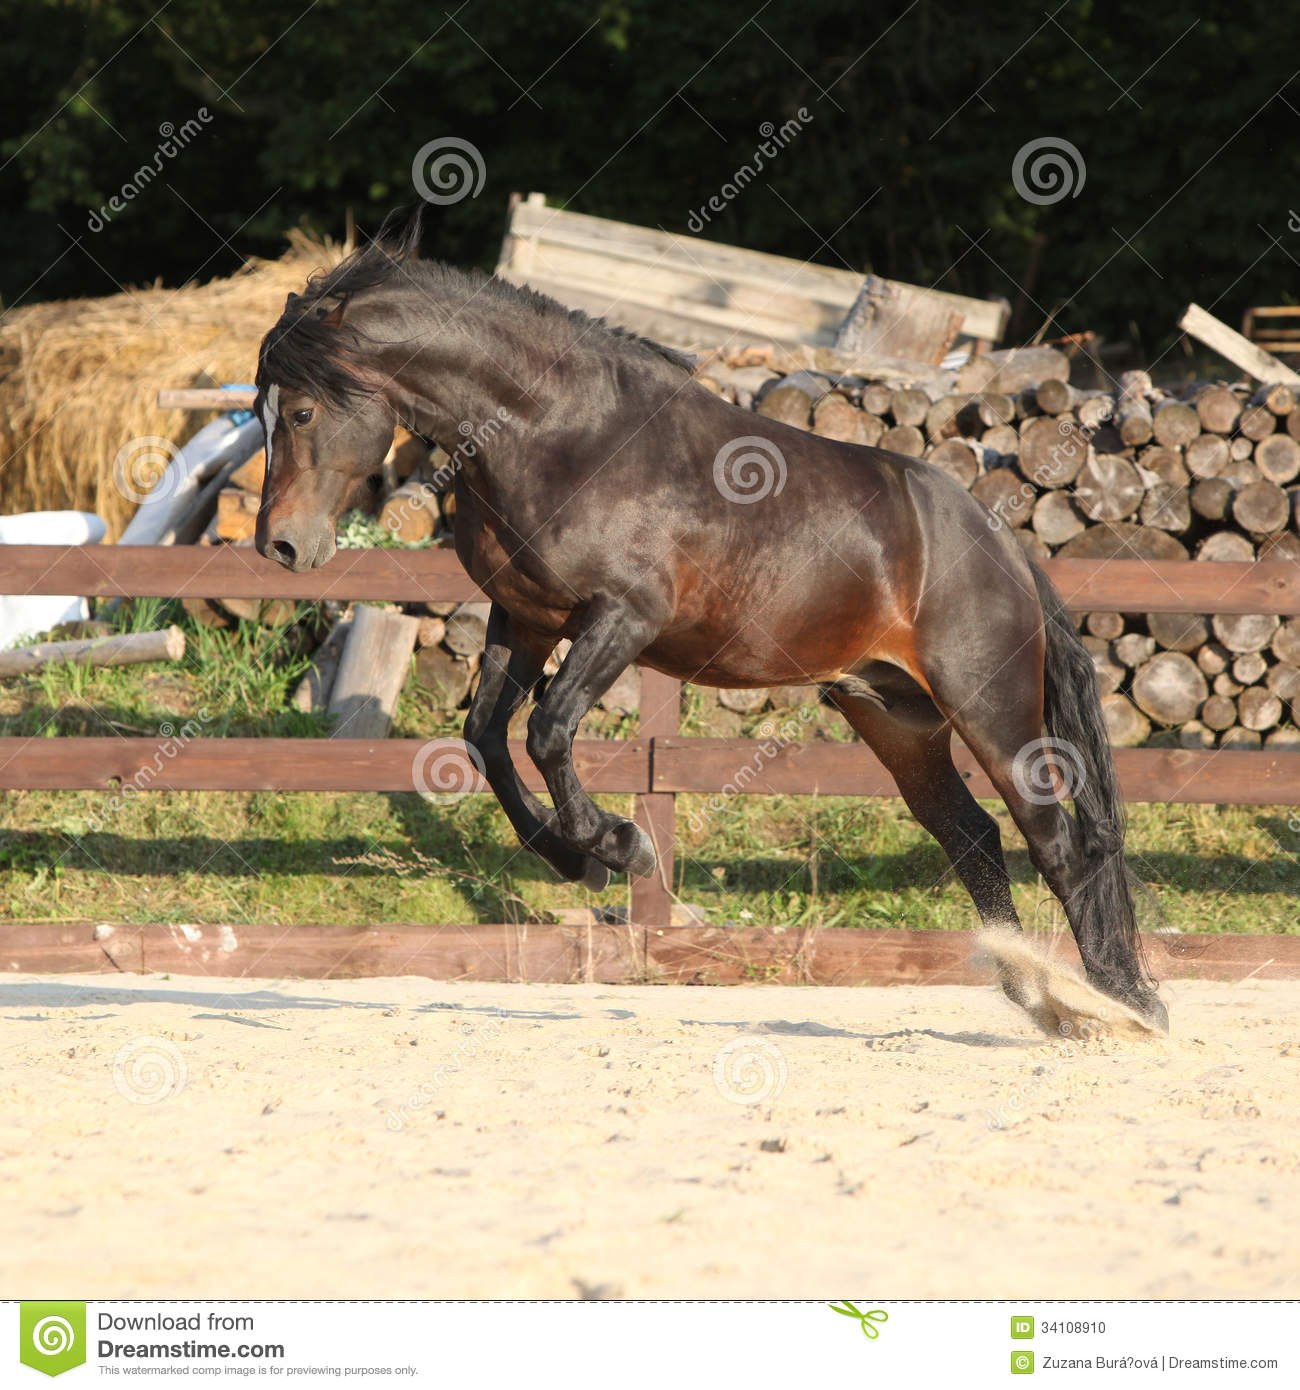 Gorgeous Brown Welsh Cob Jumping Stock Photo Image Of Equine Mammal 34108910